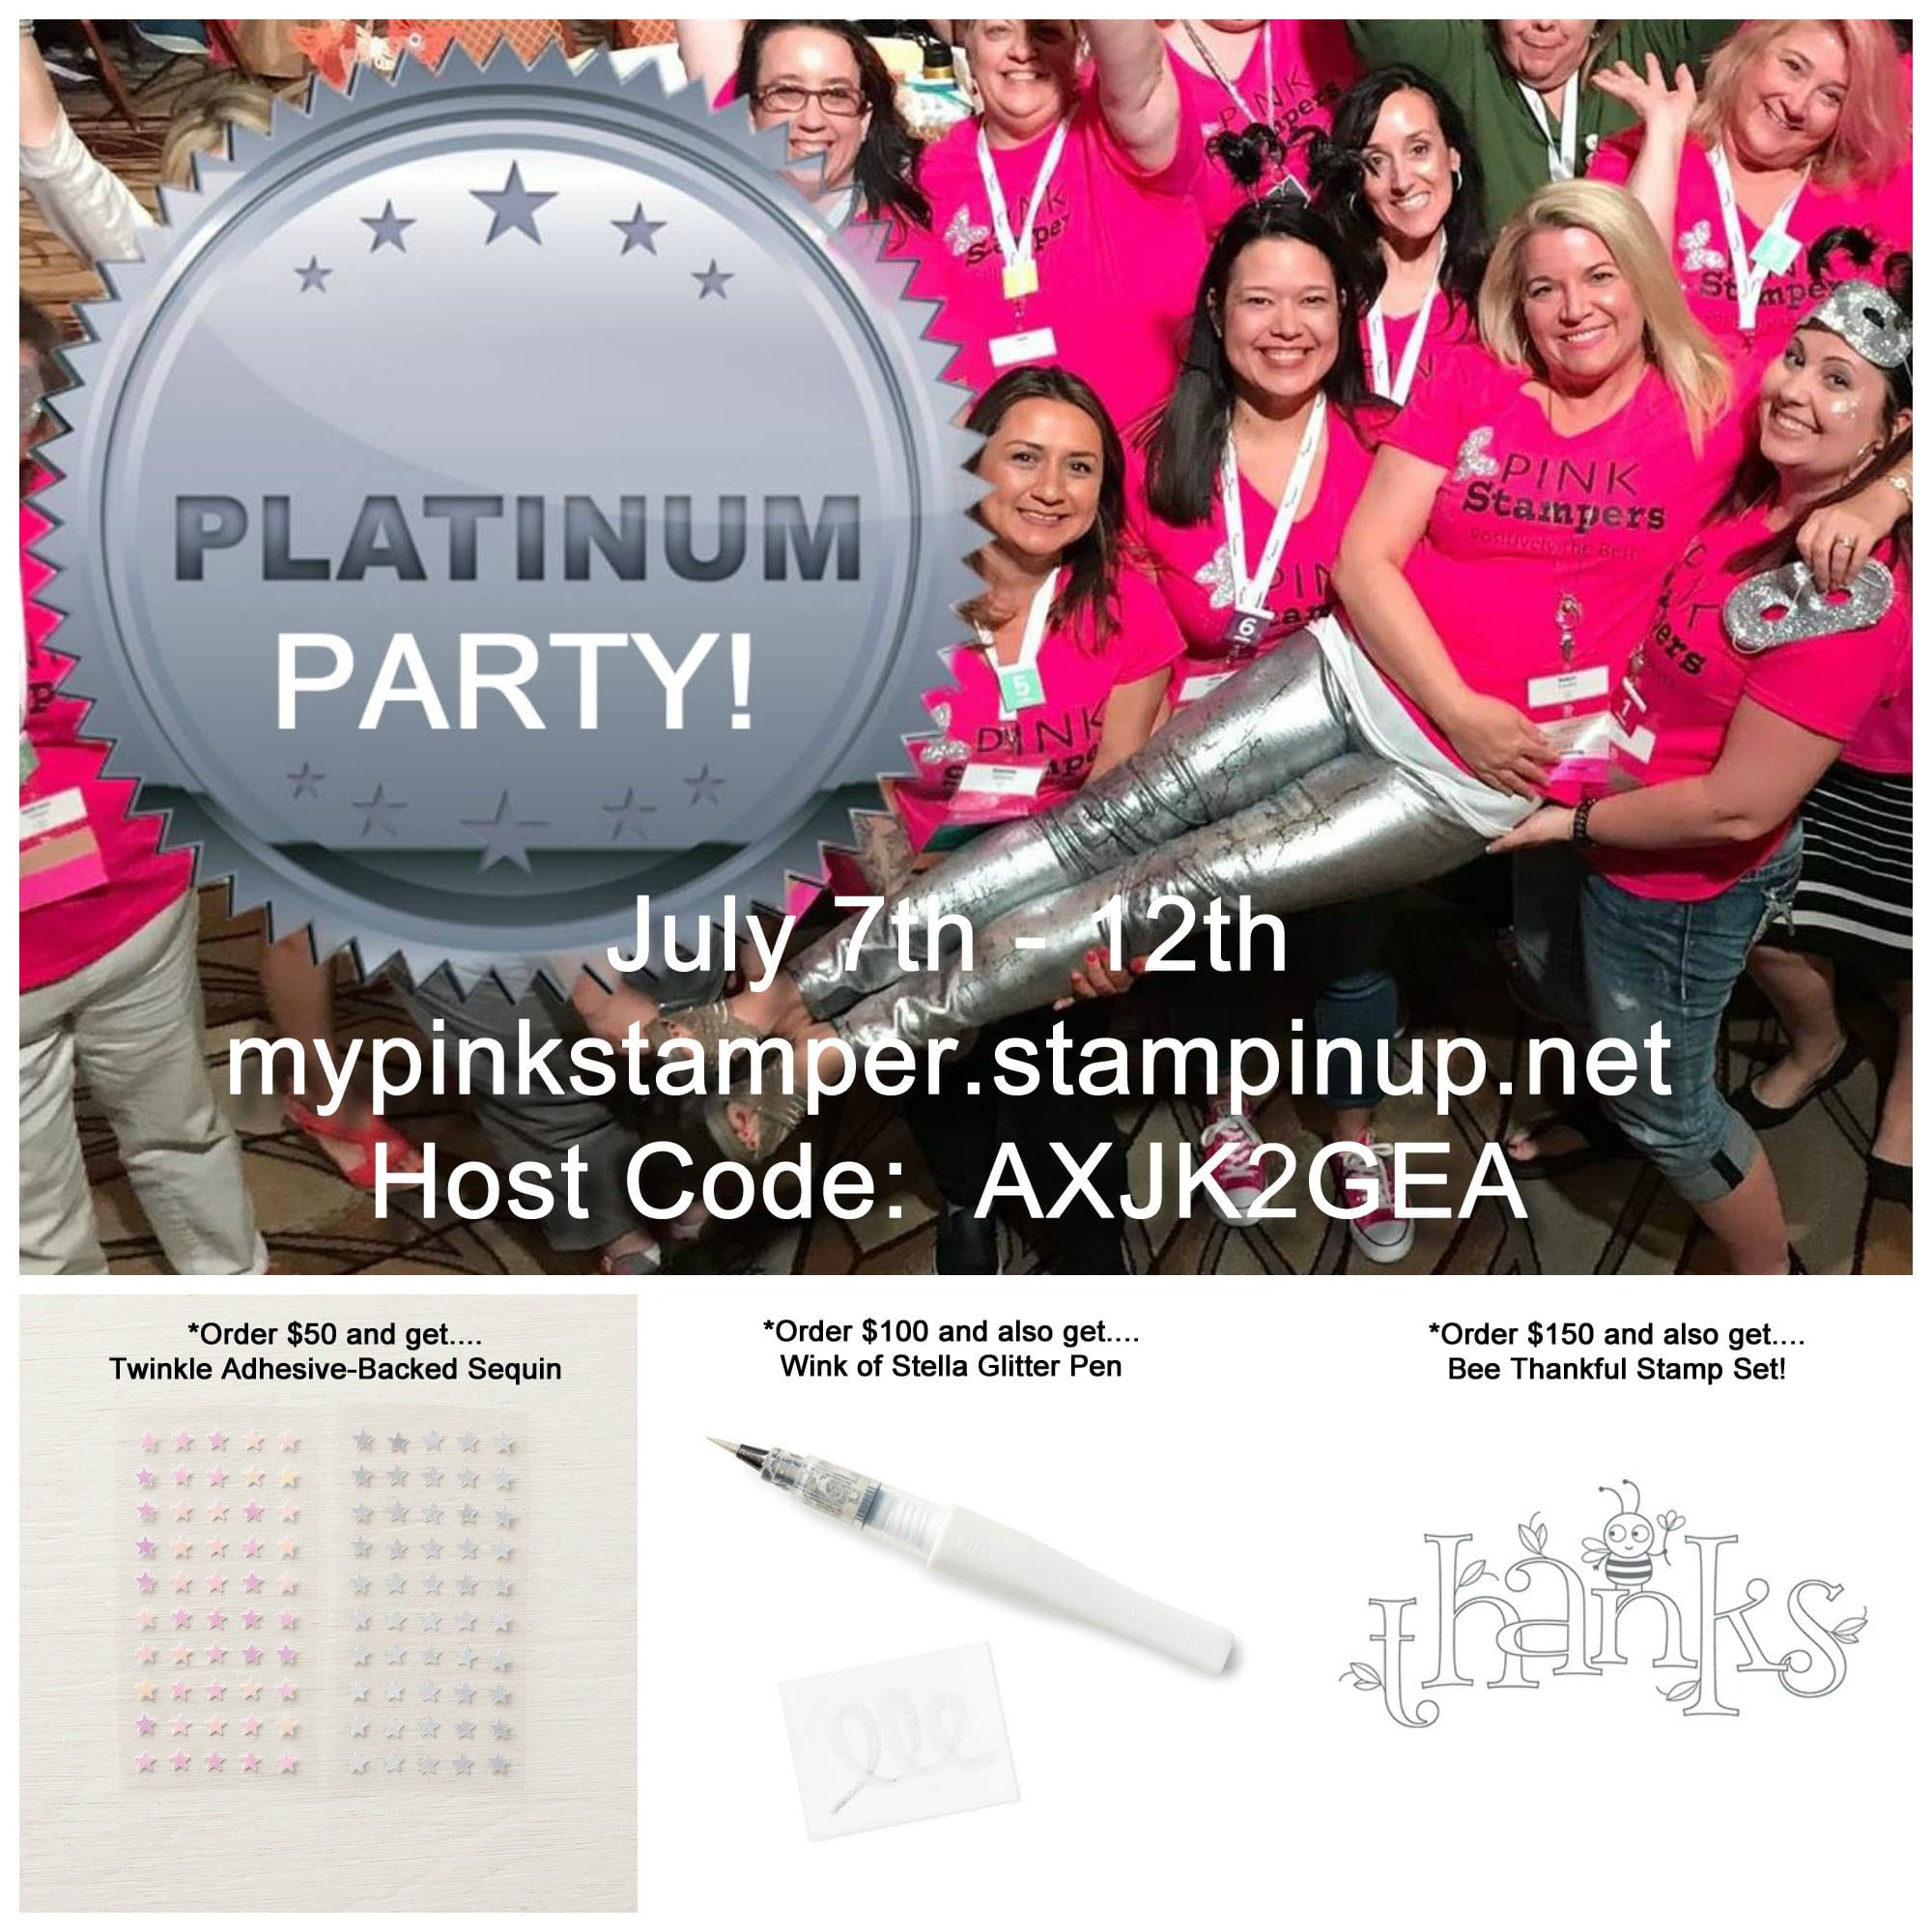 It's a PLATINUM Party!